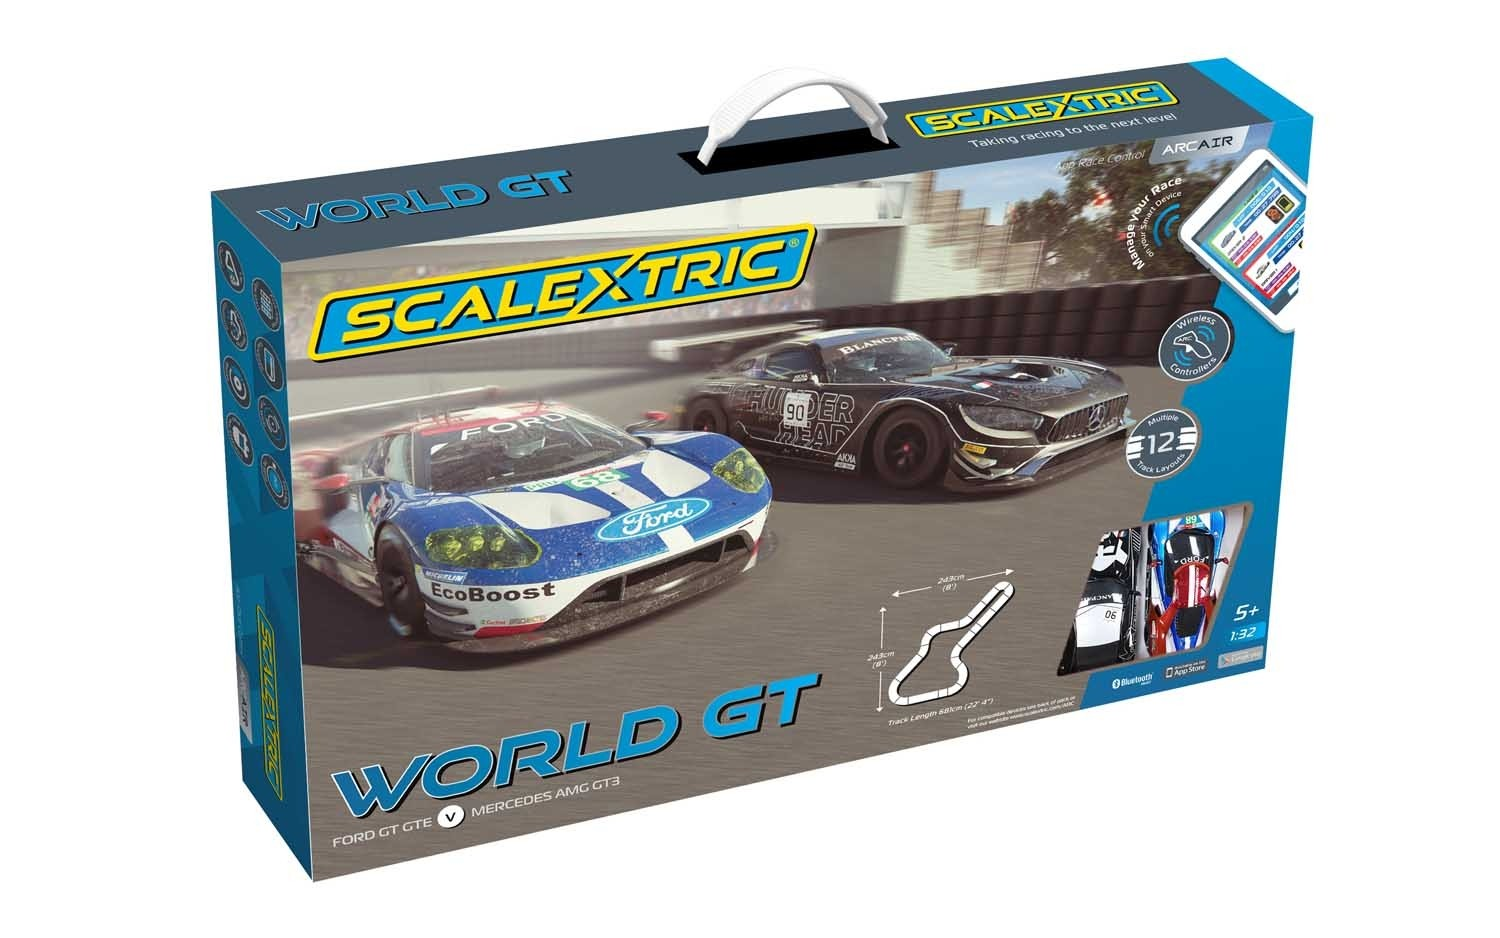 ARC AIR World GT (Ford GT GTE v Mercedes AMG GT3)